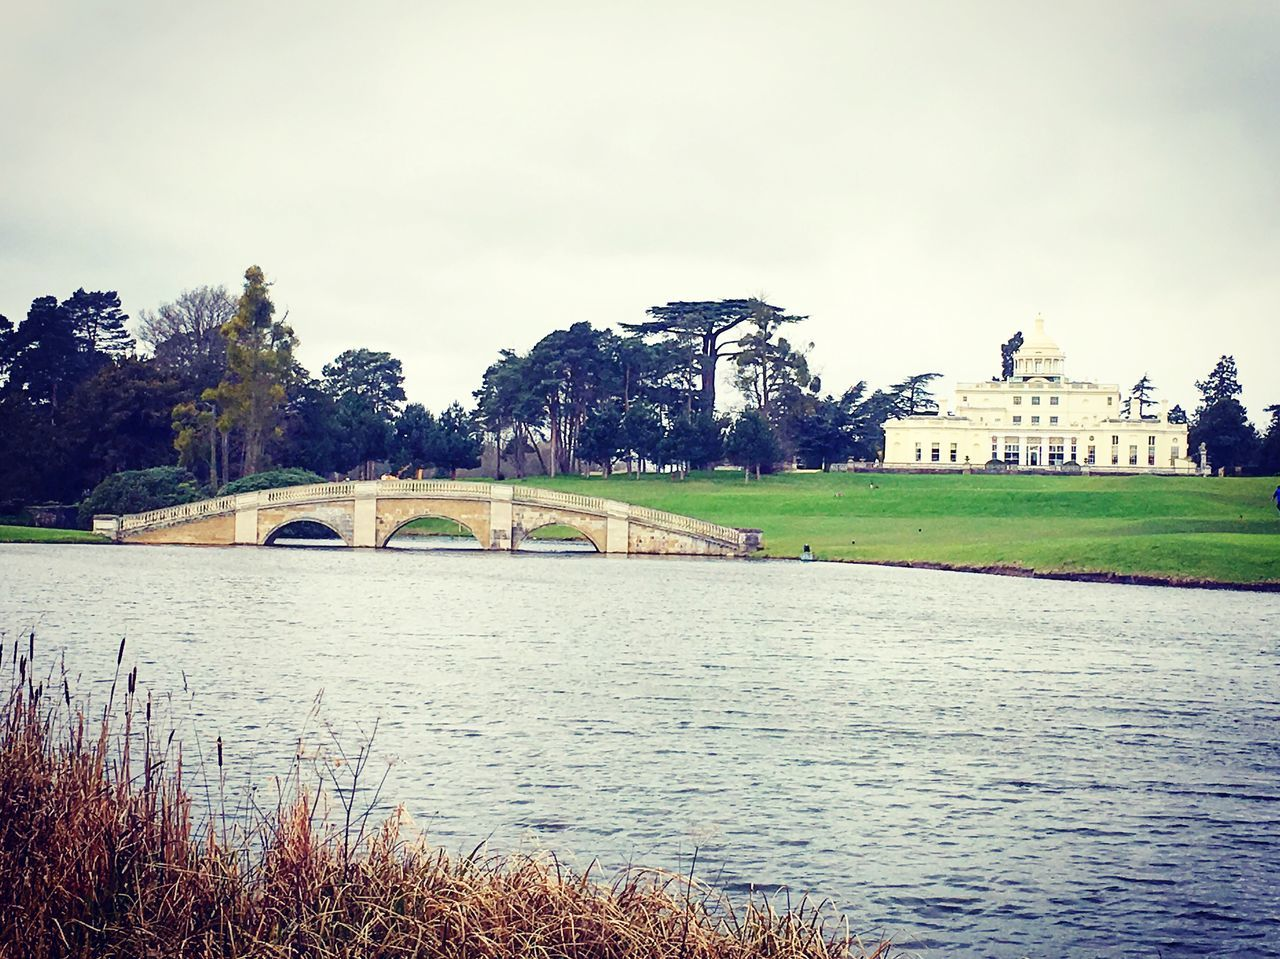 Architecture Building Exterior Tree Built Structure Water Sky Outdoors River Growth Day Nature Grass Travel Destinations Waterfront No People People In The Background Beauty In Nature Stoke Park Stoke Poges Estate Grand Architecture Countryside Country Life